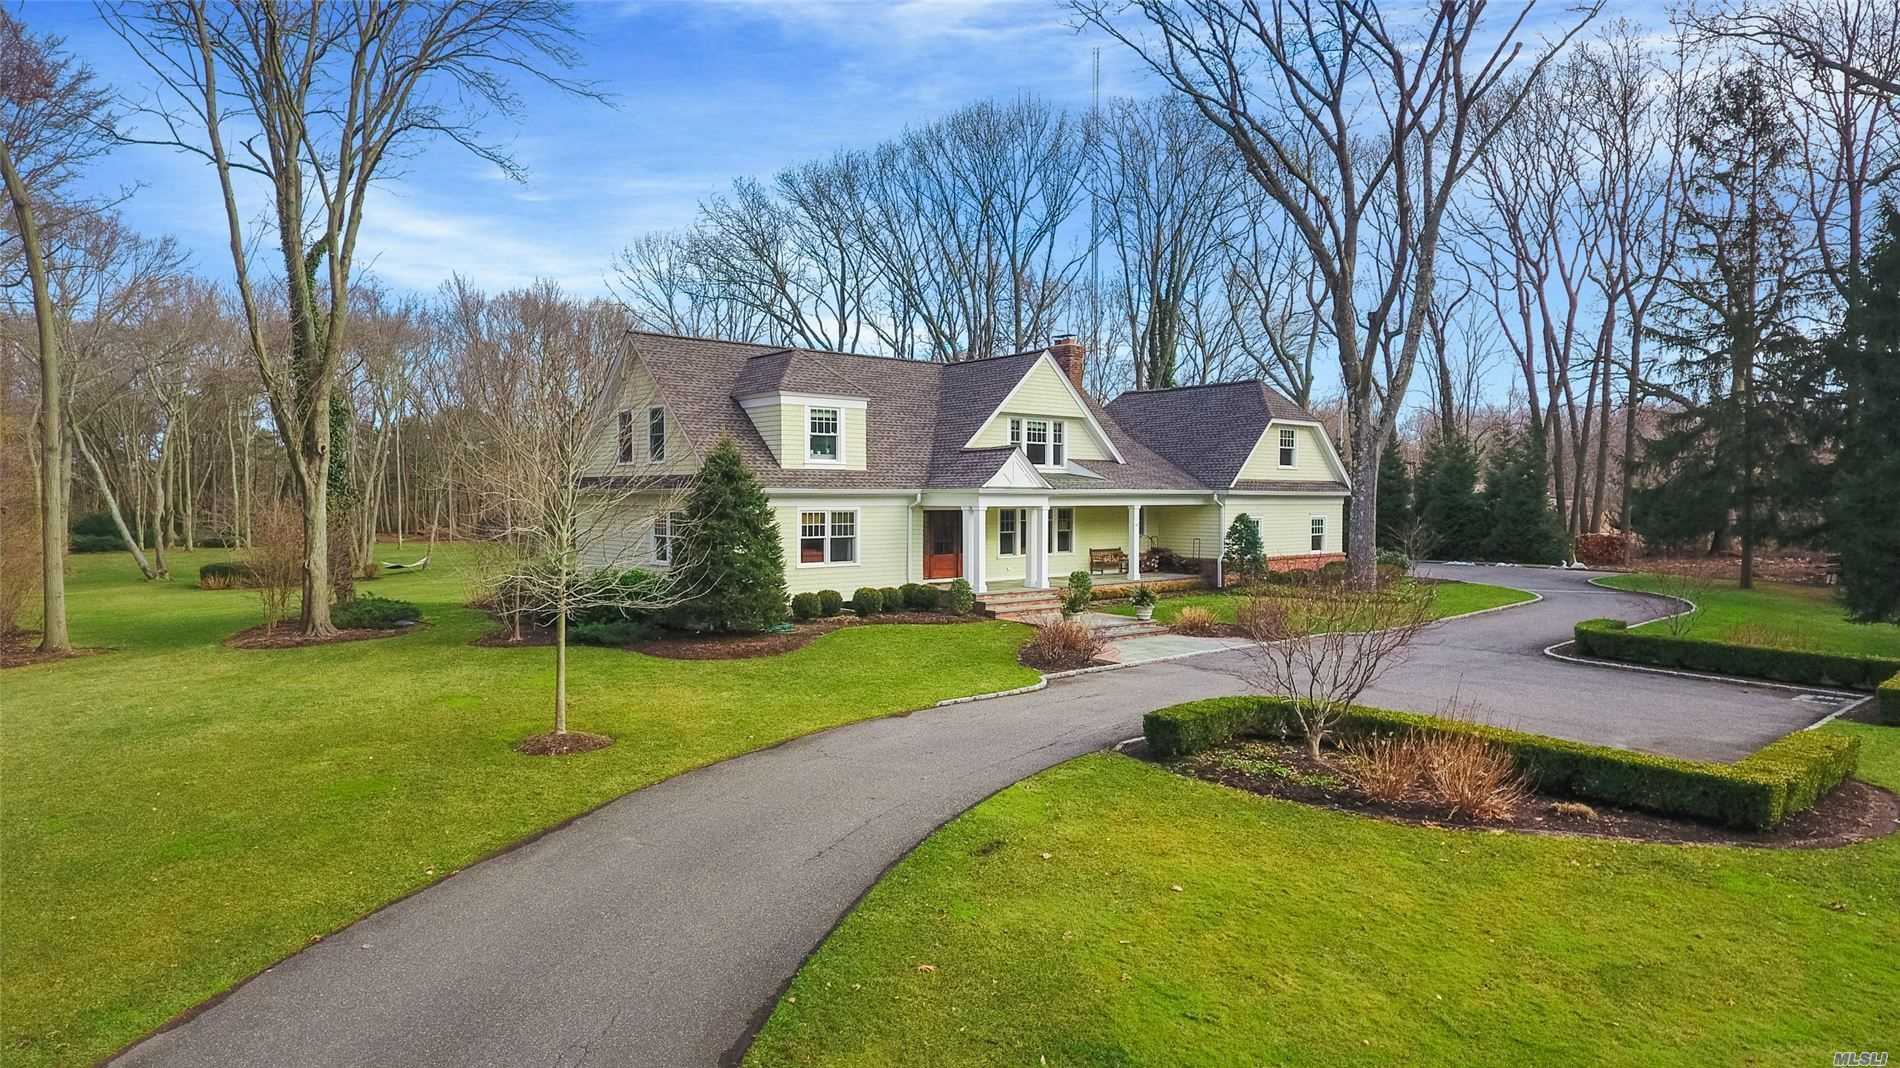 7 Crosby Place, Cold Spring Harbor, NY 11724 - MLS#: 3228678